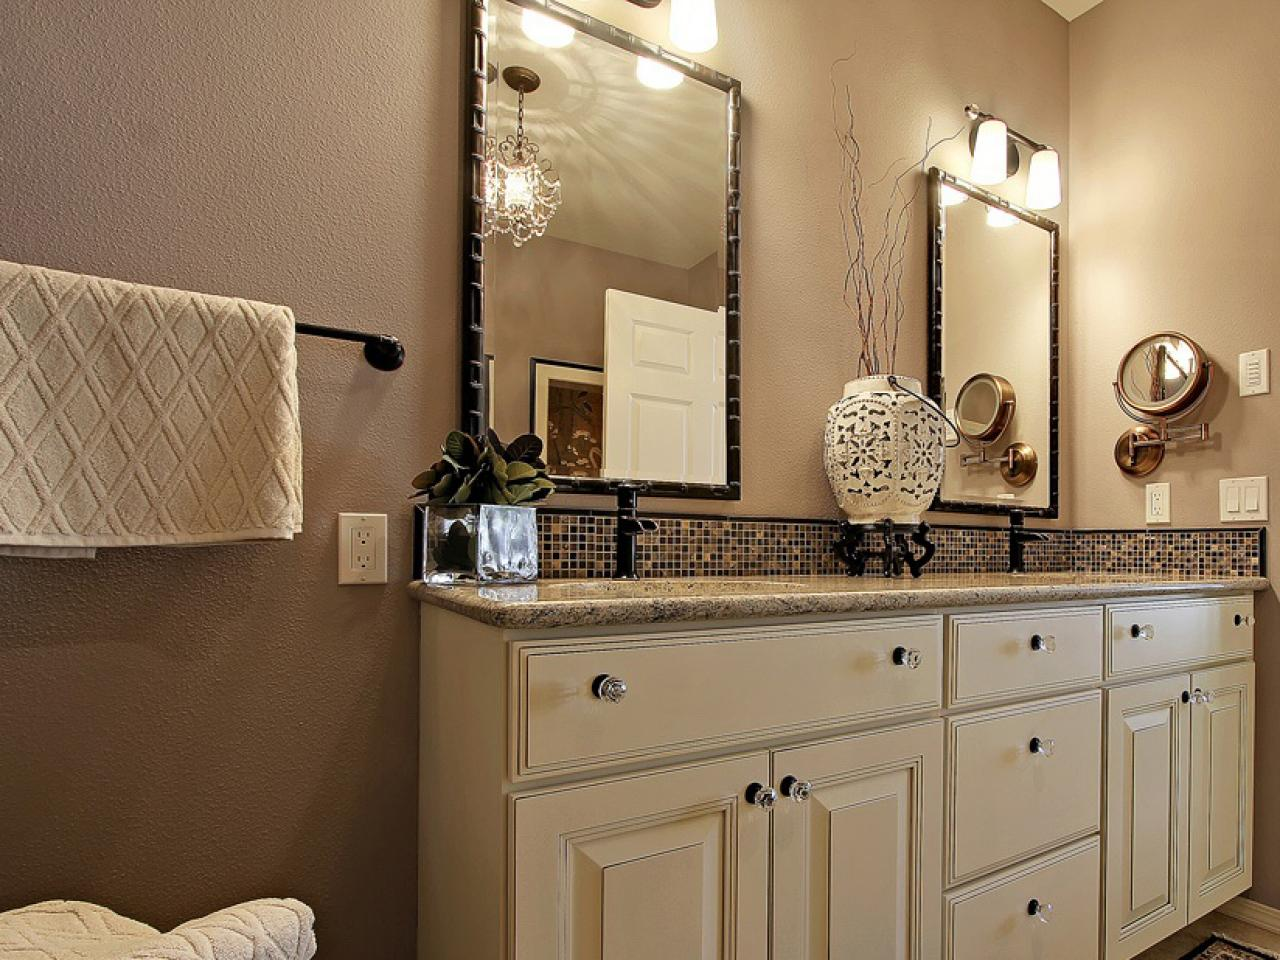 Bathroom vanity accessories hgtv for Bathroom vanity accessories